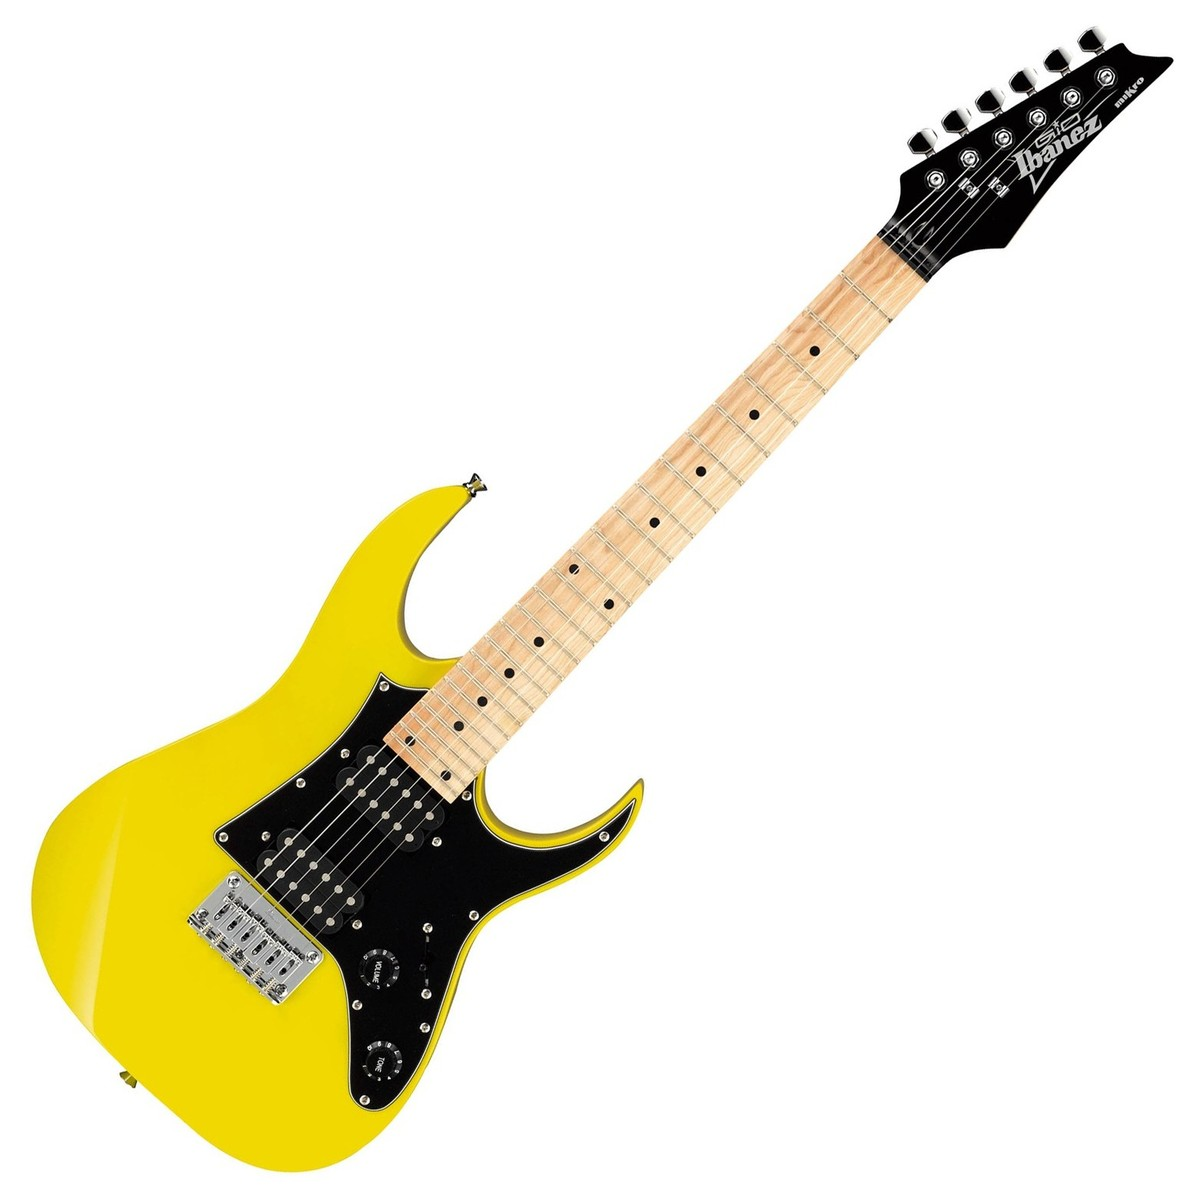 ibanez mikro grgm21m electric guitar yellow at. Black Bedroom Furniture Sets. Home Design Ideas